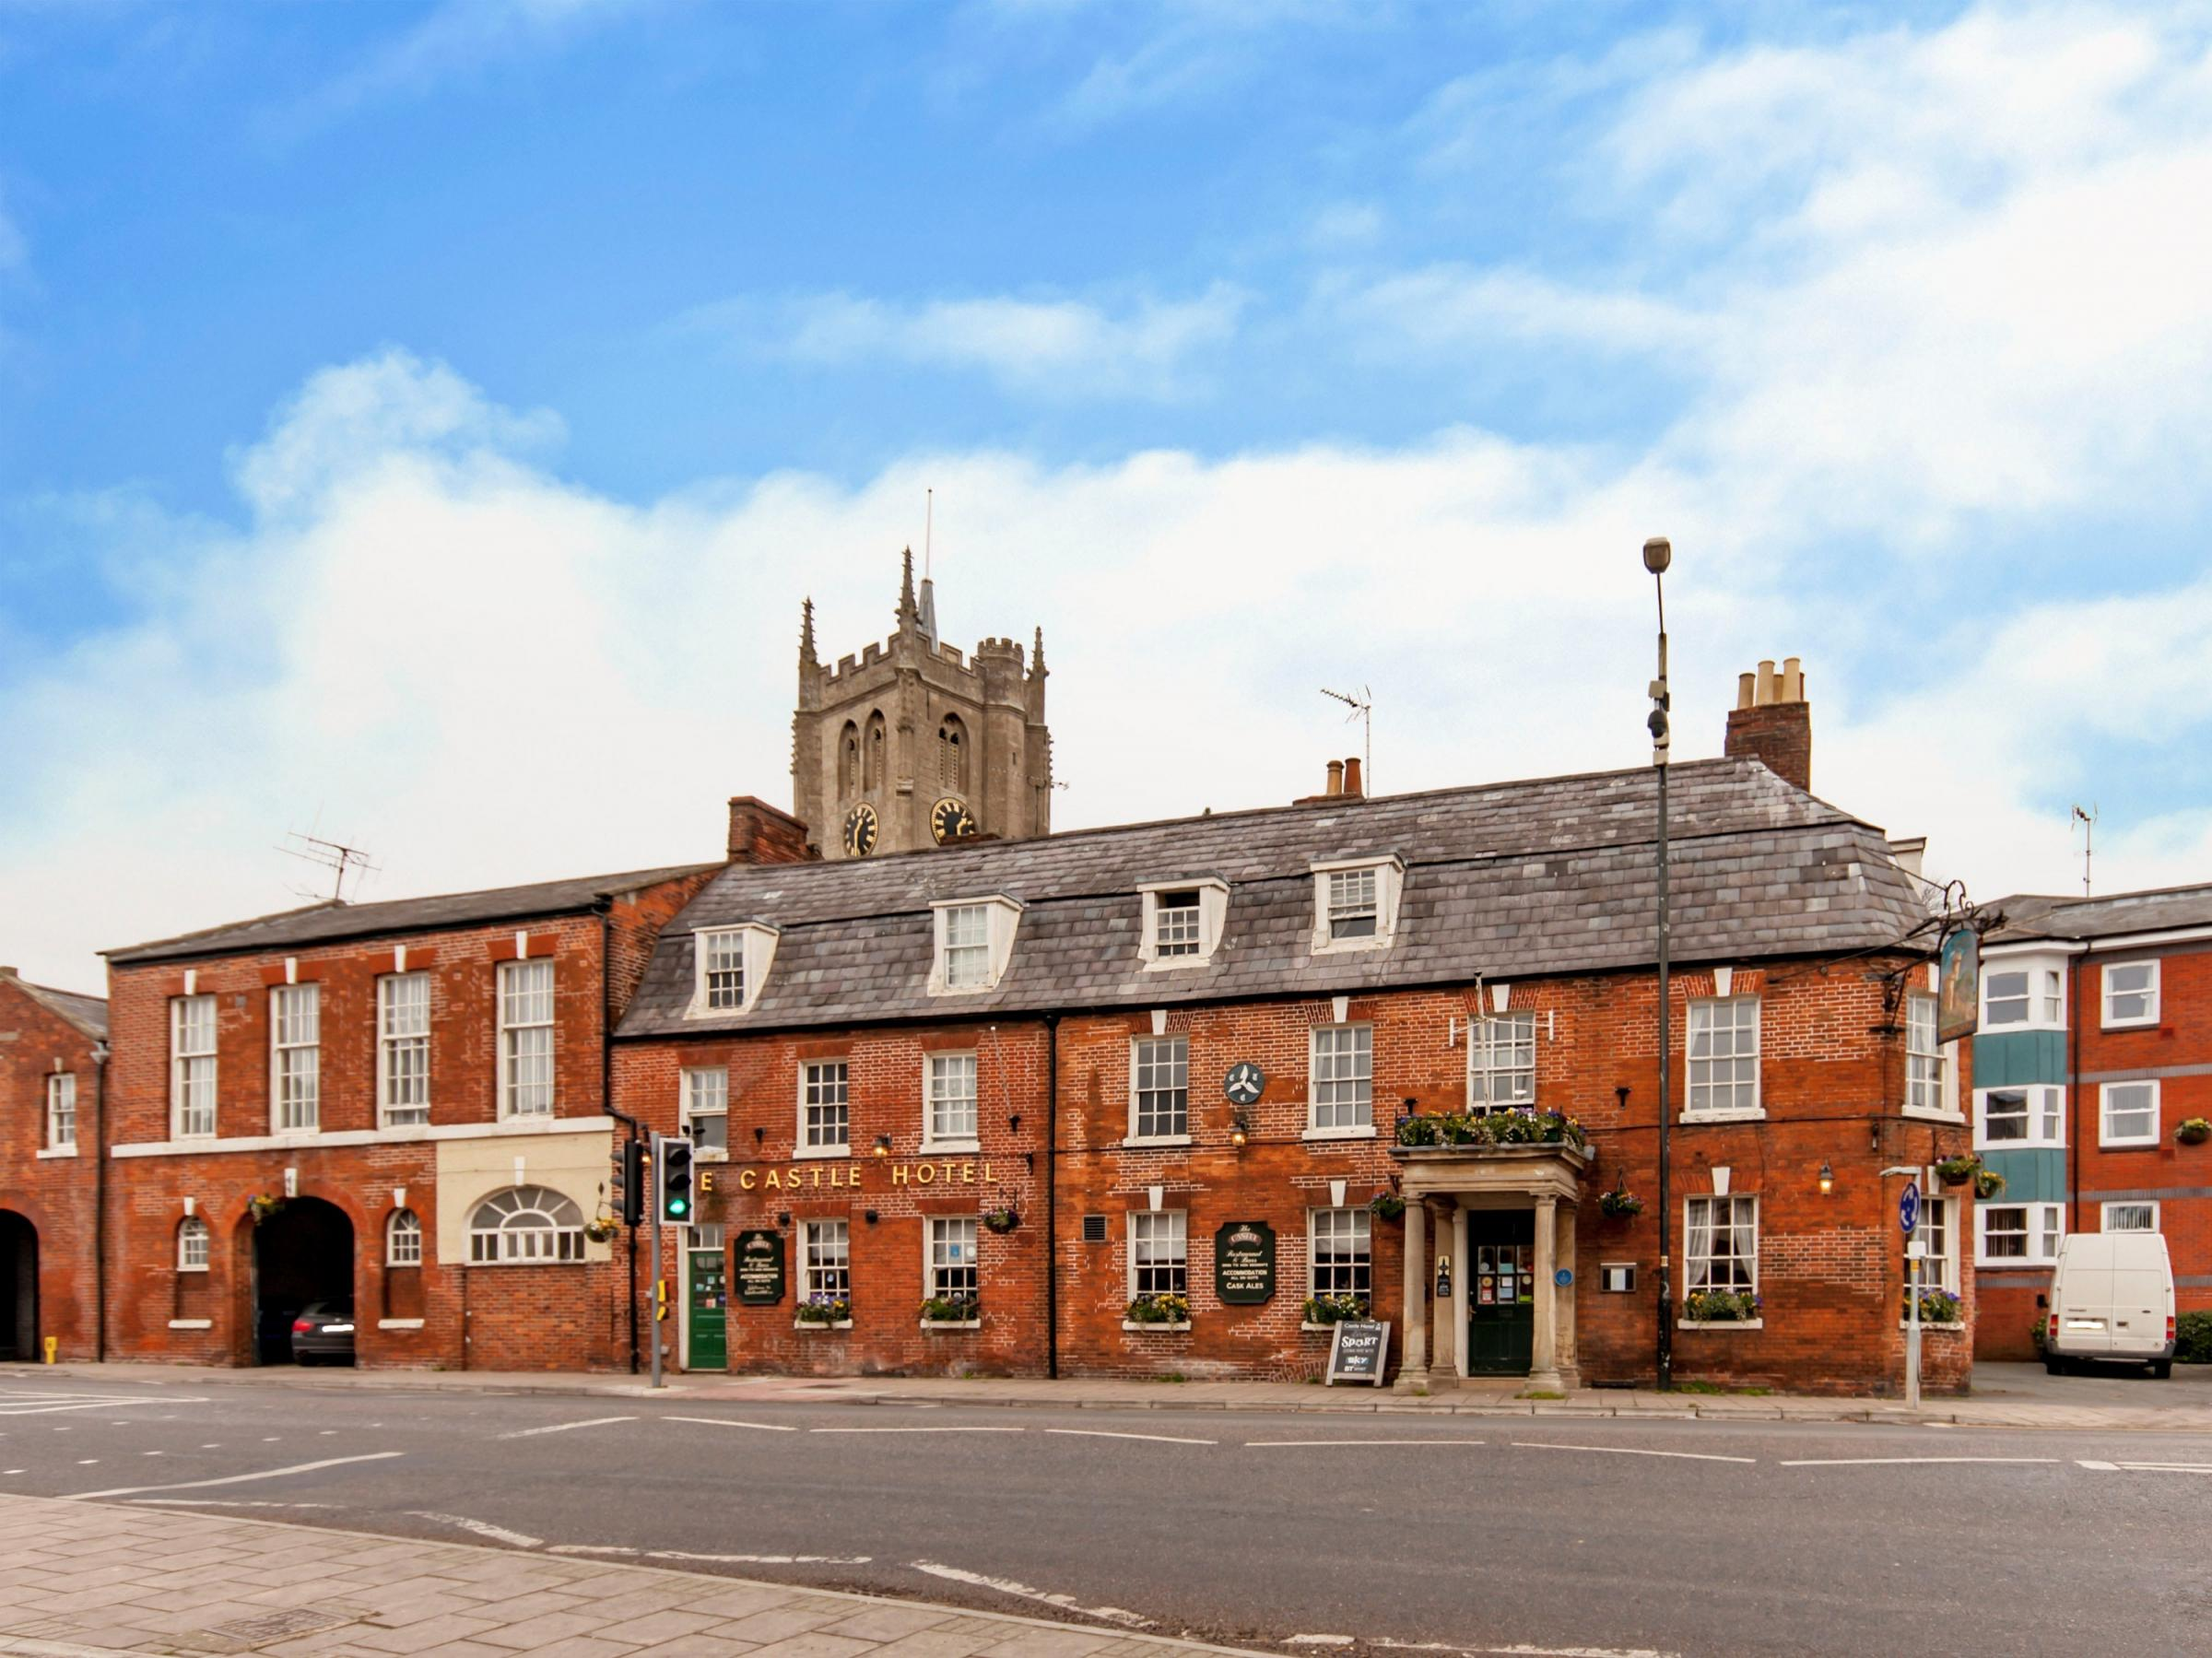 Castle Hotel, Devizes is up for sale